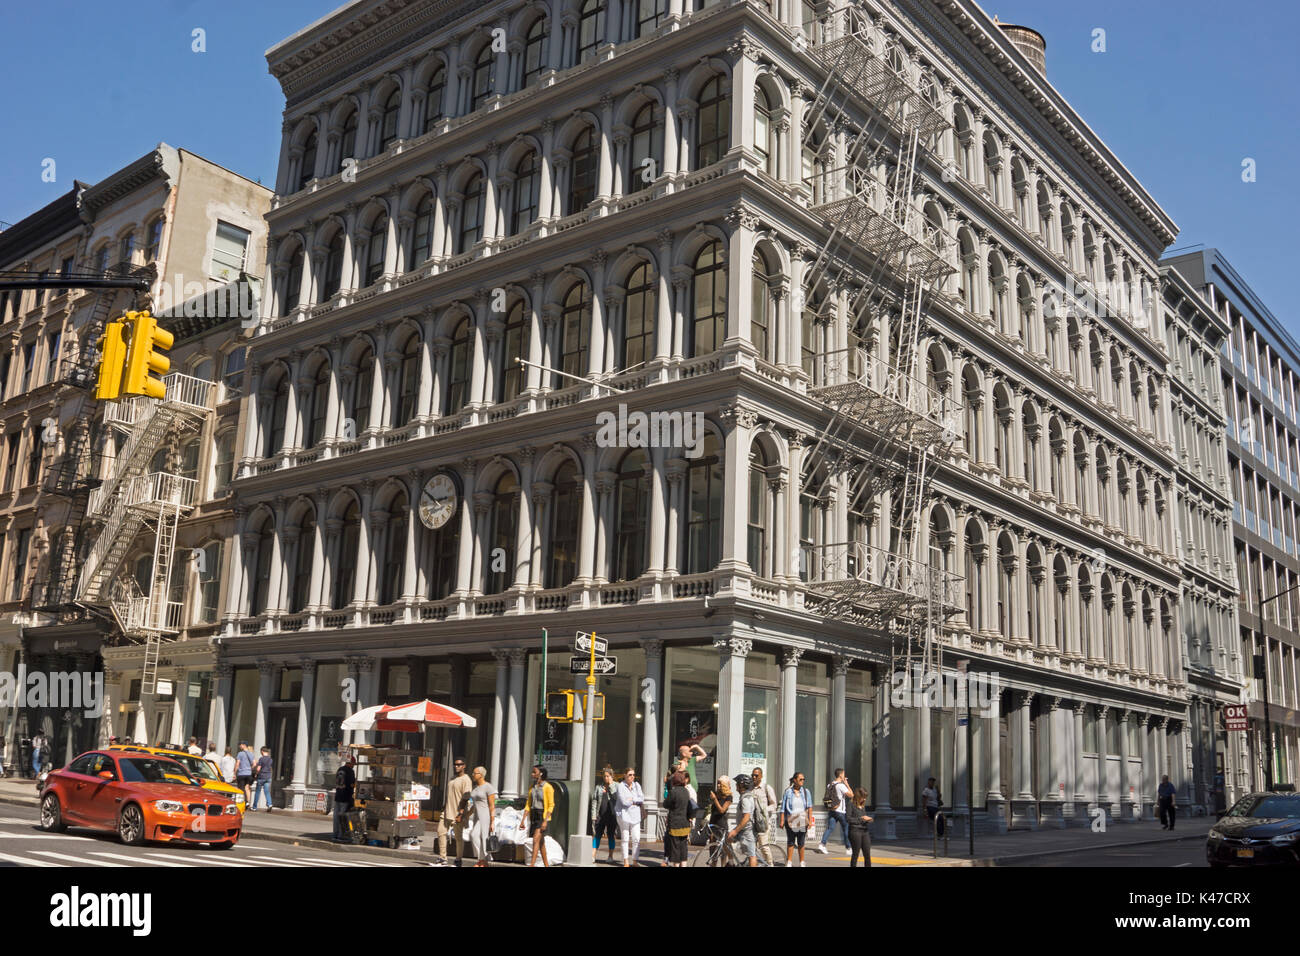 The landmarked, cast iron building on Broadway at Broome Street in Manhattan was designed in 1857 as a store for E.V. Haughwout & Co. - Stock Image